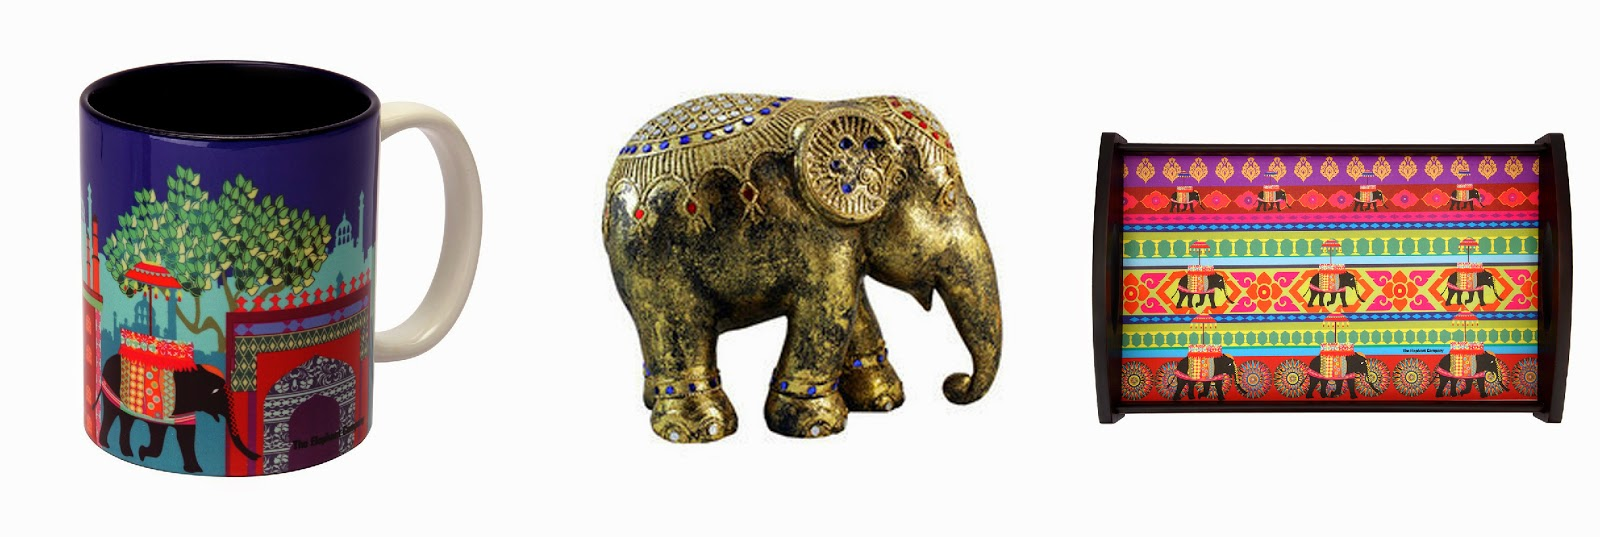 Elephants, artifacts, the elephant co, the elephant co, mugs , cups, glasses , tumblers, beer mugs, shot glasses, coffee mugs, table linen, napkins, placement mats, drink wear , table wear, cutlery, crockery, cutlery, trays, coasters, bedding, quilts, bedcovers, towels, hand towels, Chushion covers, decorative cushions , peg tables, coffee tables, side tables, stool cum tray tables, wall shelves, wall clocks, alarm clocks, clocks, storage, magazine racks , tissue box holder, wall art , wall decor, decorative mirrors, table lamps, candles, room freshners, photo frames, leather bags, shopping bags, sling bags, messenger bags,,khol as, wallets, tshirts,  iPad slings, mousepads, iPhonecovwrs, iPad sleeves,card holder, mugs online, cups online, glasses online, tumblers online, beer mugs online, shot glasses online, coffee mugs online, table linen online, napkins online, placement mats online, drink wear online, table wear online, cutlery online, crockery online, cutlery online, trays online, coasters, bedding  online, quilts online, bedcovers online, towels online, hand towels online, Chushion covers online, decorative cushions  online, peg tables online, coffee tables online, side tables online, stool cum tray tables online, wall shelves online, wall clocks online, alarm clocks online, clocks, storage online, magazine racks online, tissue box holder online, wall art online, wall decor online, decorative mirrors online , table lamps online, candles online, room freshners online, photo frames online, leather bags online, shopping bags online, sling bags online, messenger bags online,khol as online, wallets  tshirts   online, iPad slings online, mousepads online, iPhonecovwrs online, iPad sleeves online, card holder online, The elephant co review, the elephant company review, The elephant co india, the elephant company india, the elephant company price, the elephant co price, the elephant company product review, the elephant co product review, Mumbai, delhi, Bangalore, goa, Indian family, flying elephants, Rajasthani , Rajasthani work, art, Rajasthani art , Rajasthani art work